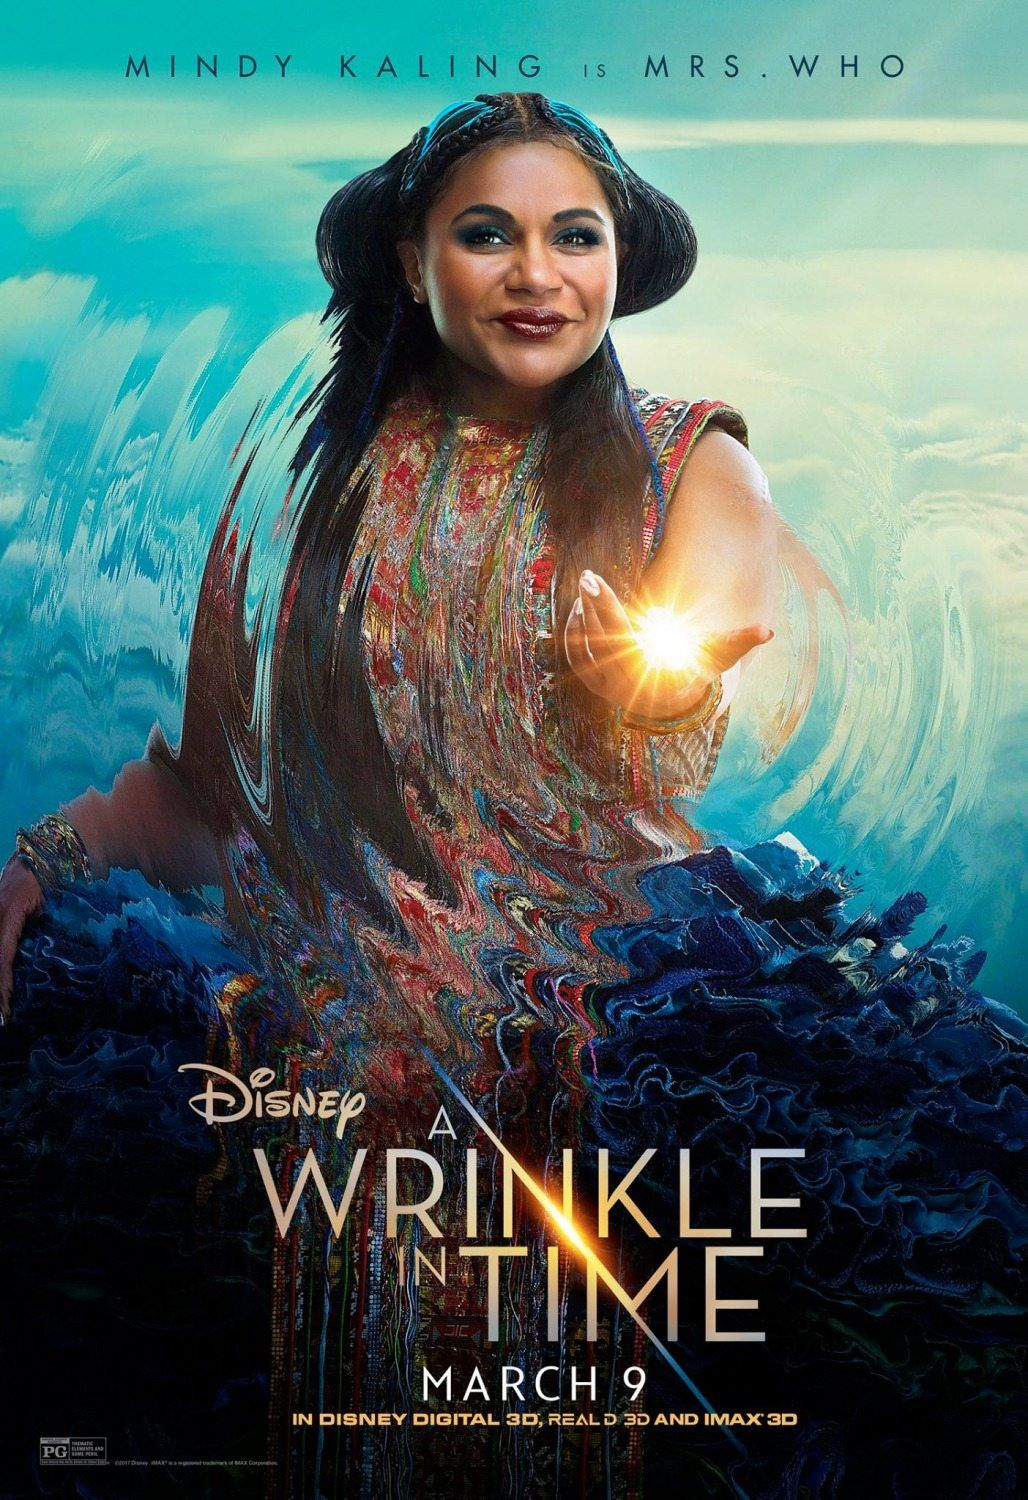 8fb81c95941 New Movie Posters for A Wrinkle in Time | Posters | A wrinkle in ...